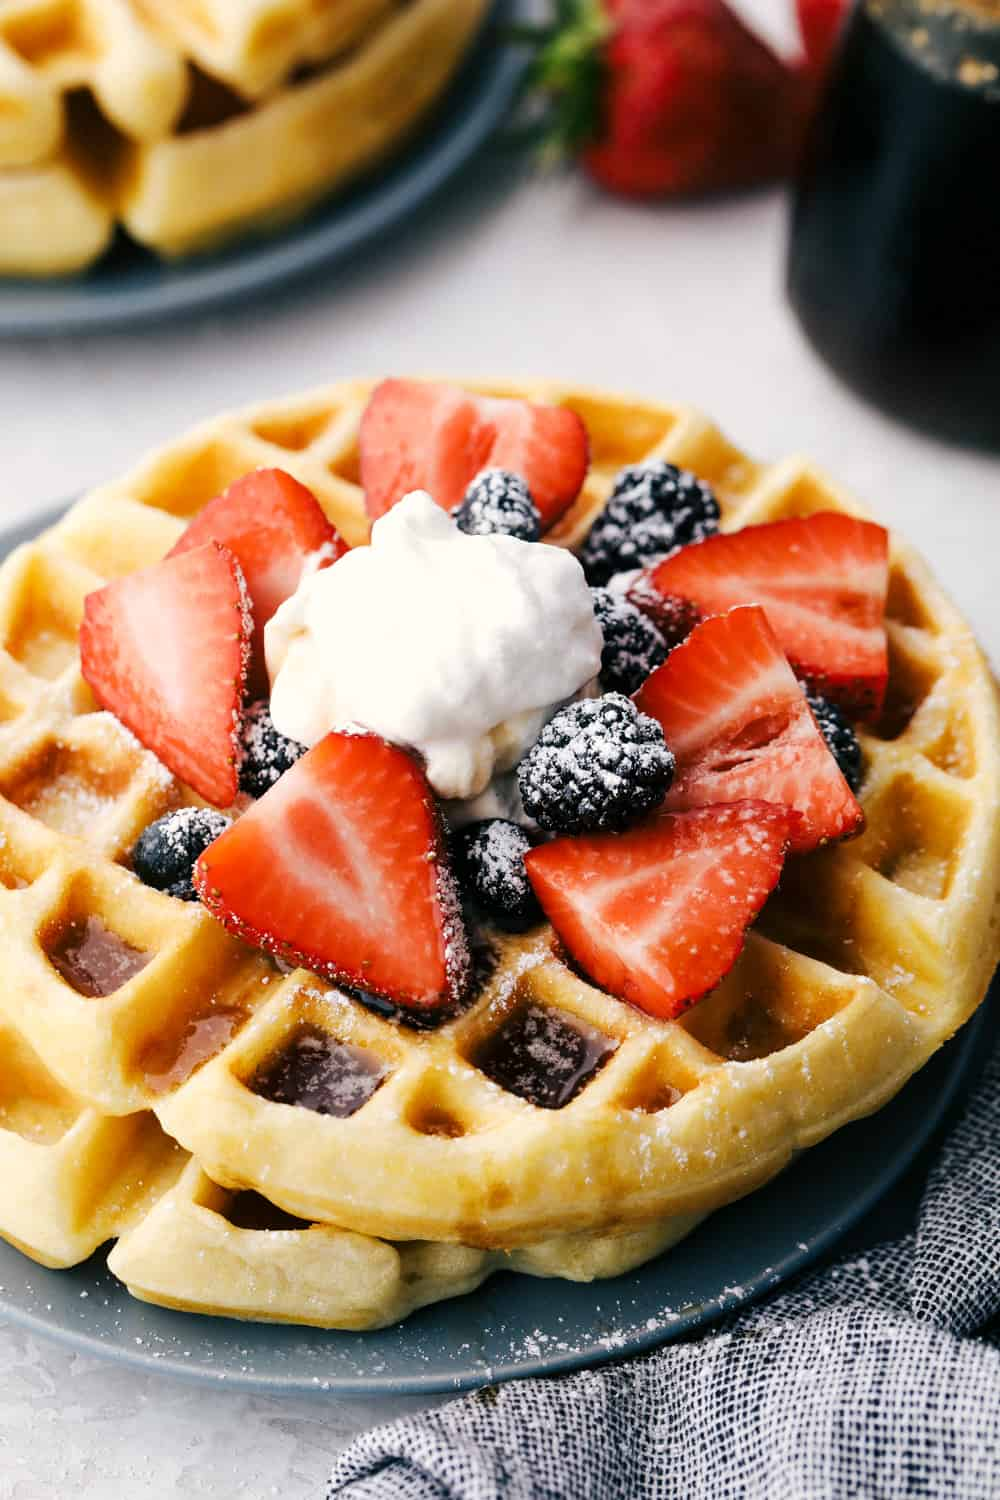 Stacked belgian waffles with berries and cream.